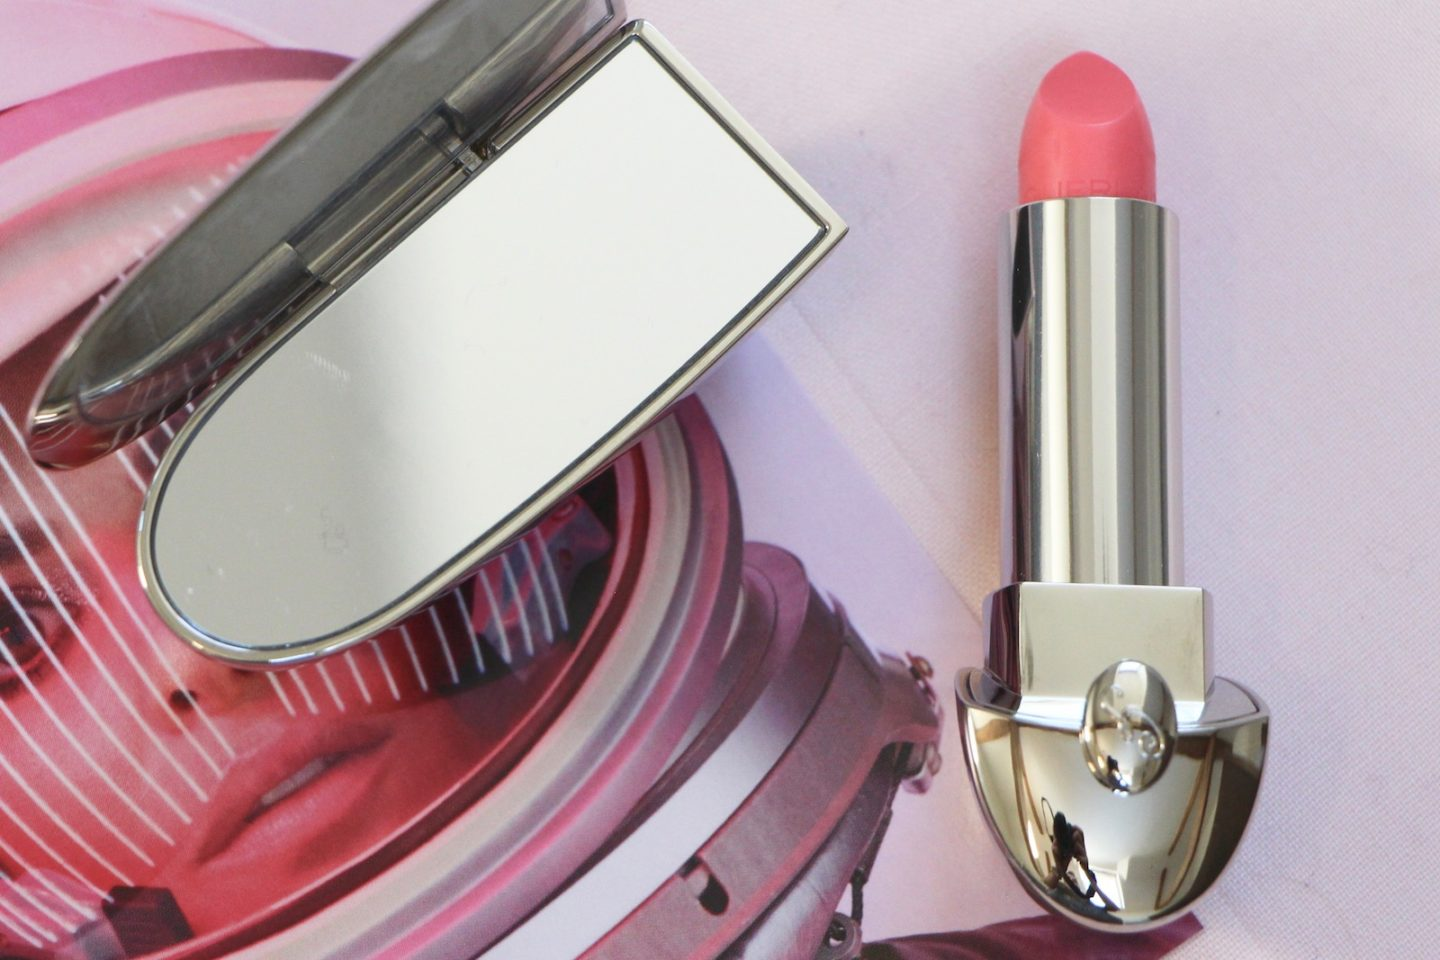 Guerlain Rouge G de Guerlain Lipstick and Case